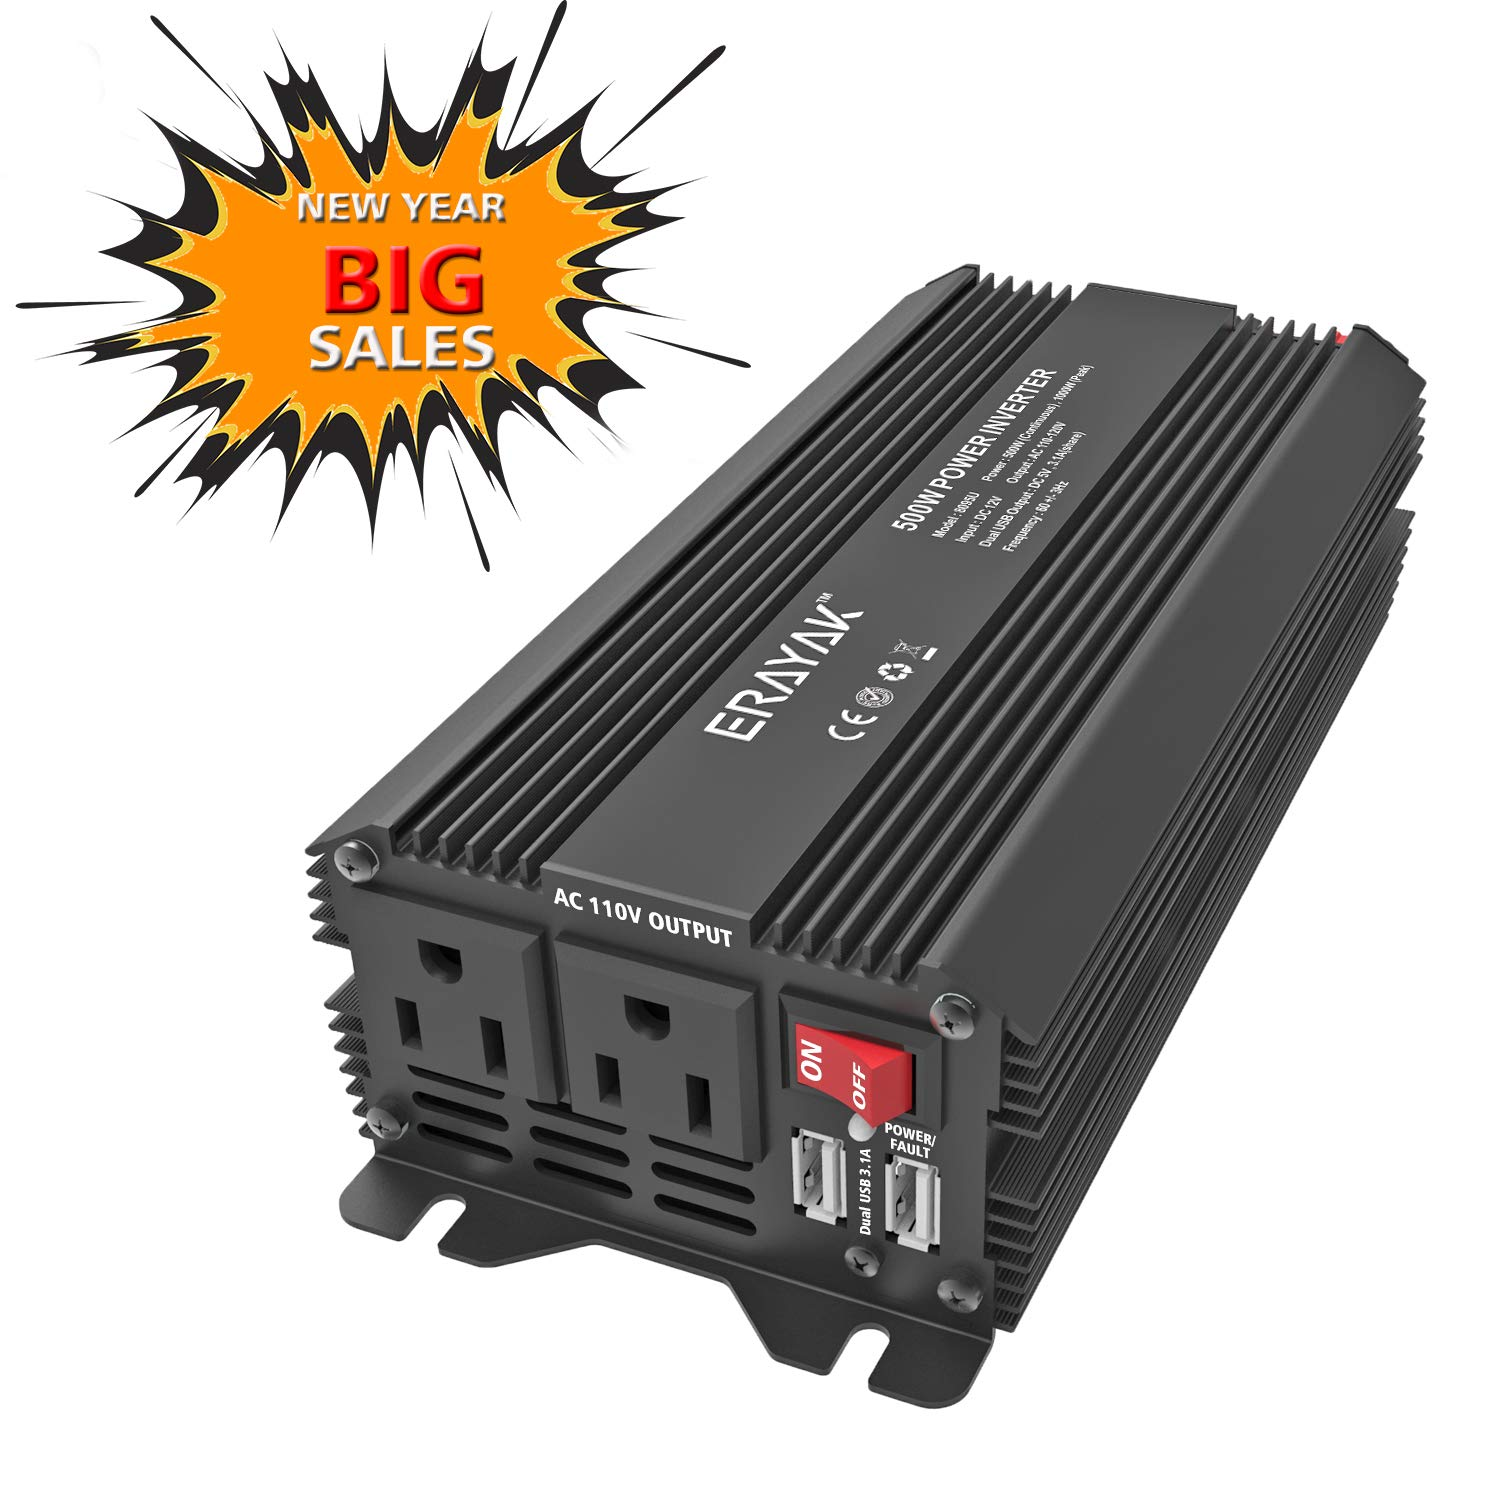 Erayak 500w Power Inverter Dc12v To Ac110v With 31a Circuit Board Attached A Small Piezo Speaker And Powered By Two Aa Dual Usb Charging Ports Car Adapter Automotive